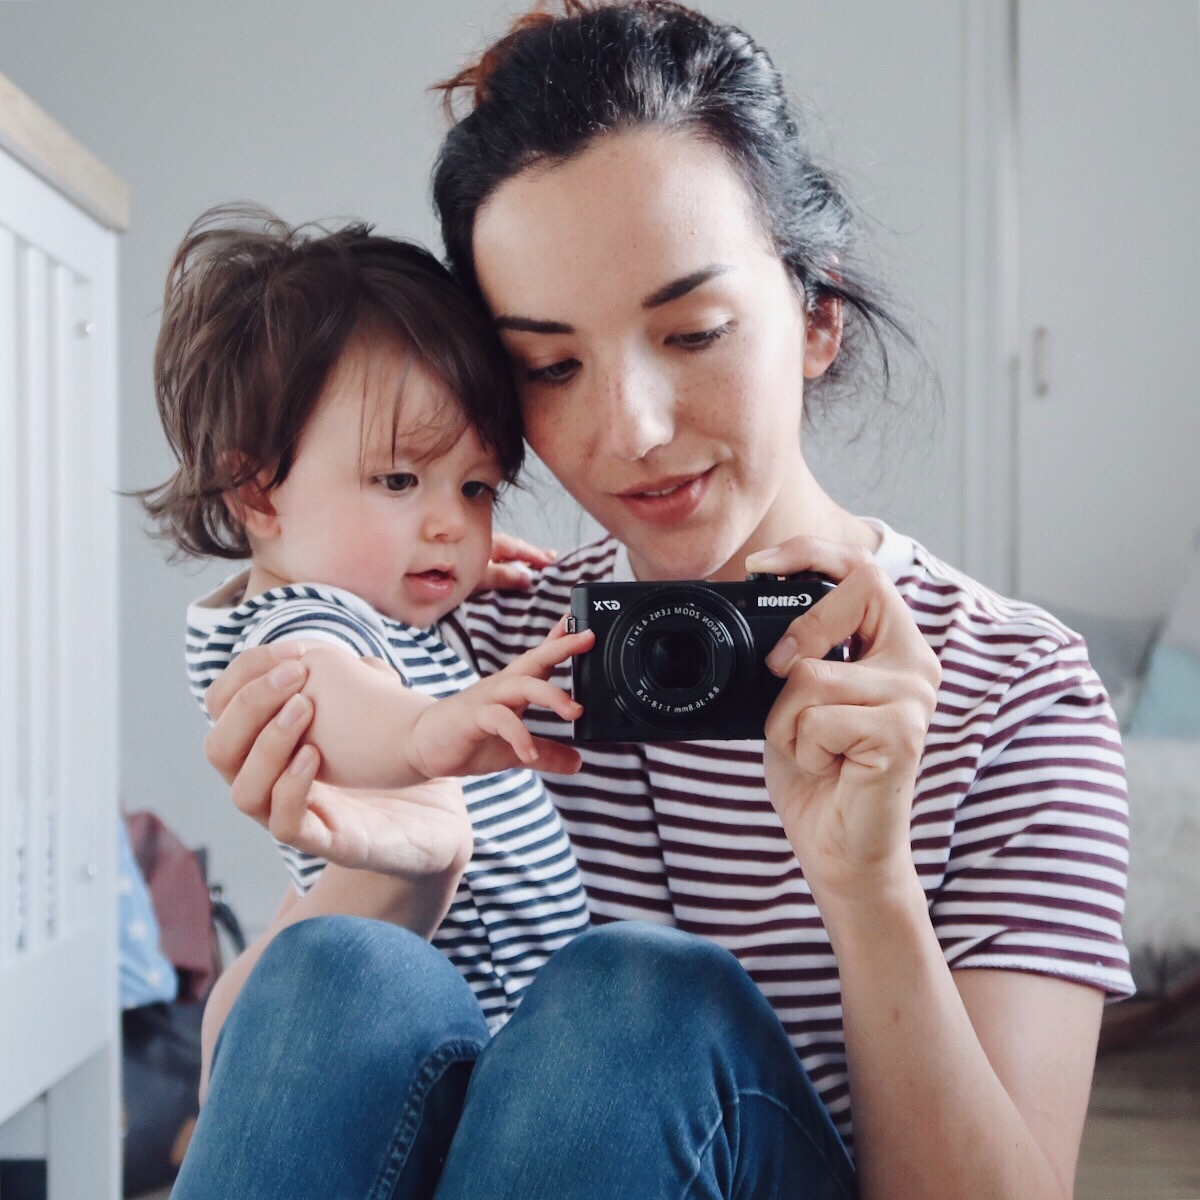 Lifestyle and parenting blogger and vlogger uk glasgow scotland scottish